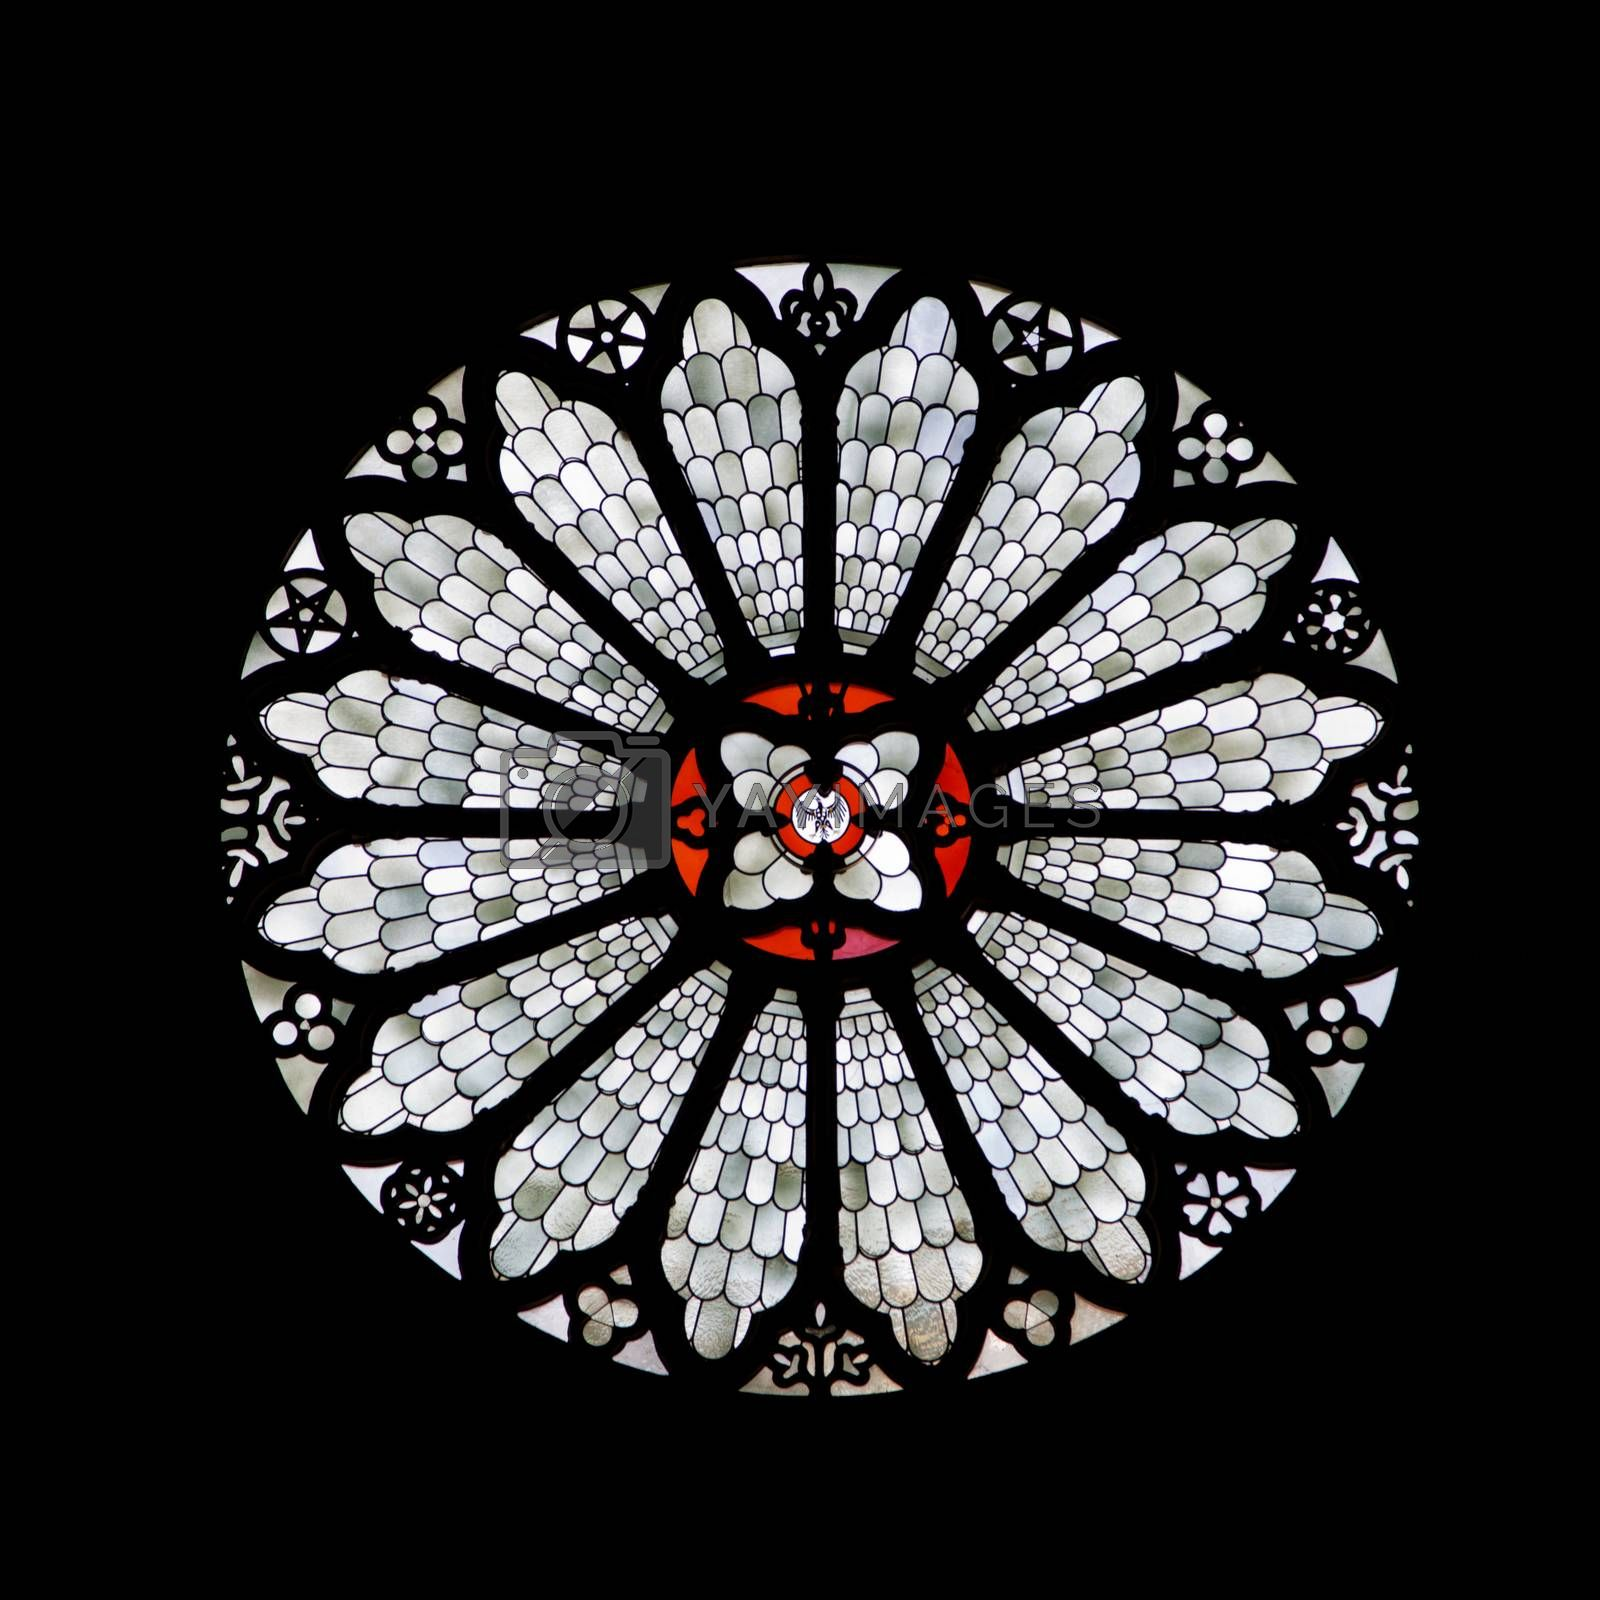 Stained-glass rose window of Trento cathedral, Northern Italy